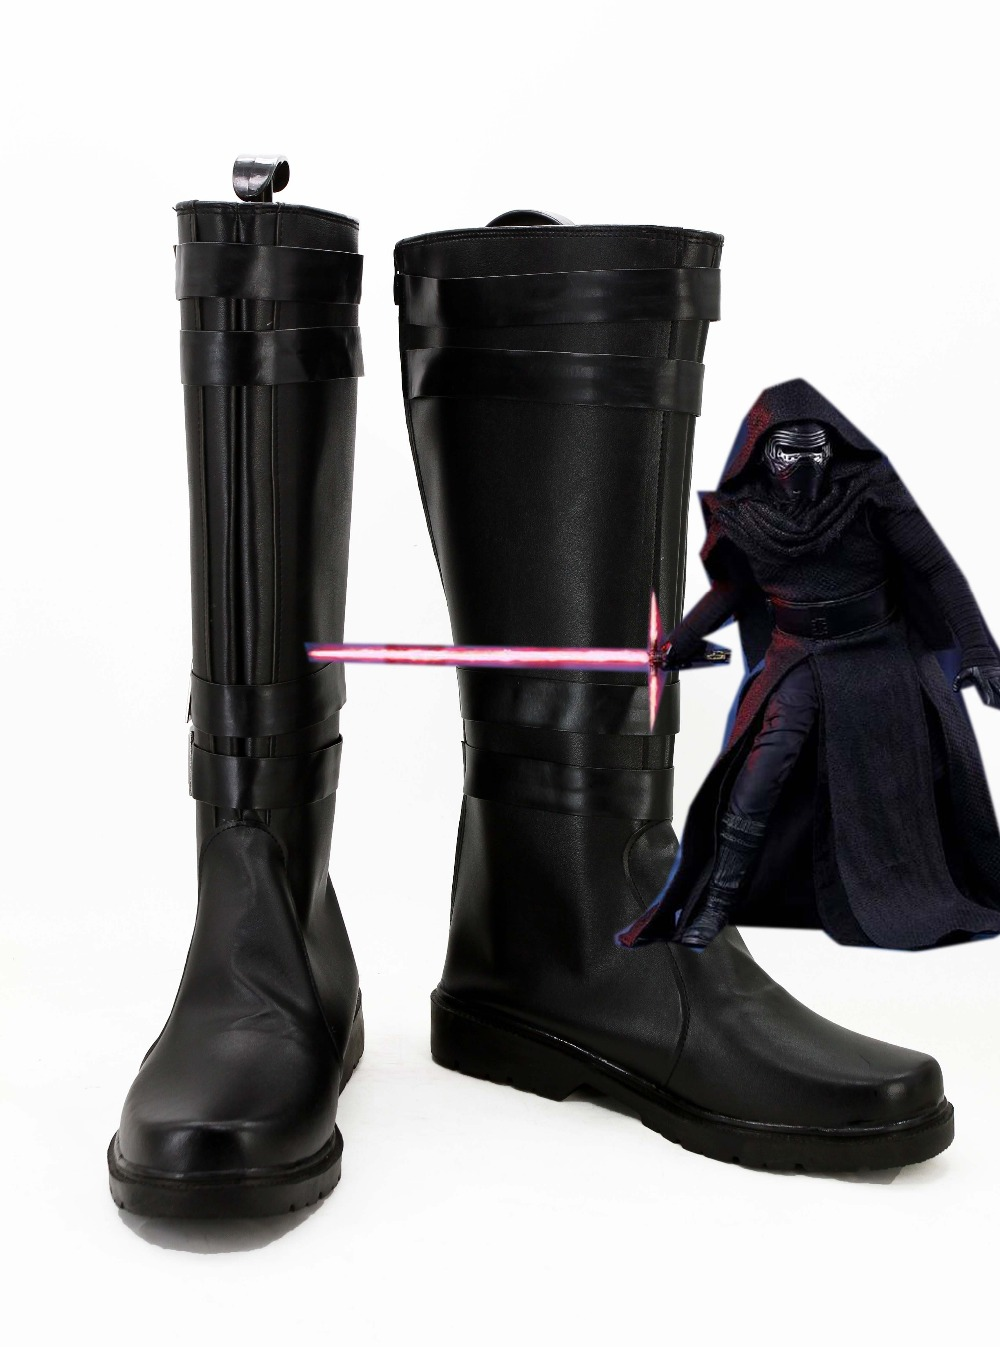 Star Wars 7: Le réveil de la force Kylo Ren Bottes Chaussures Costume Cosplay Custom Made